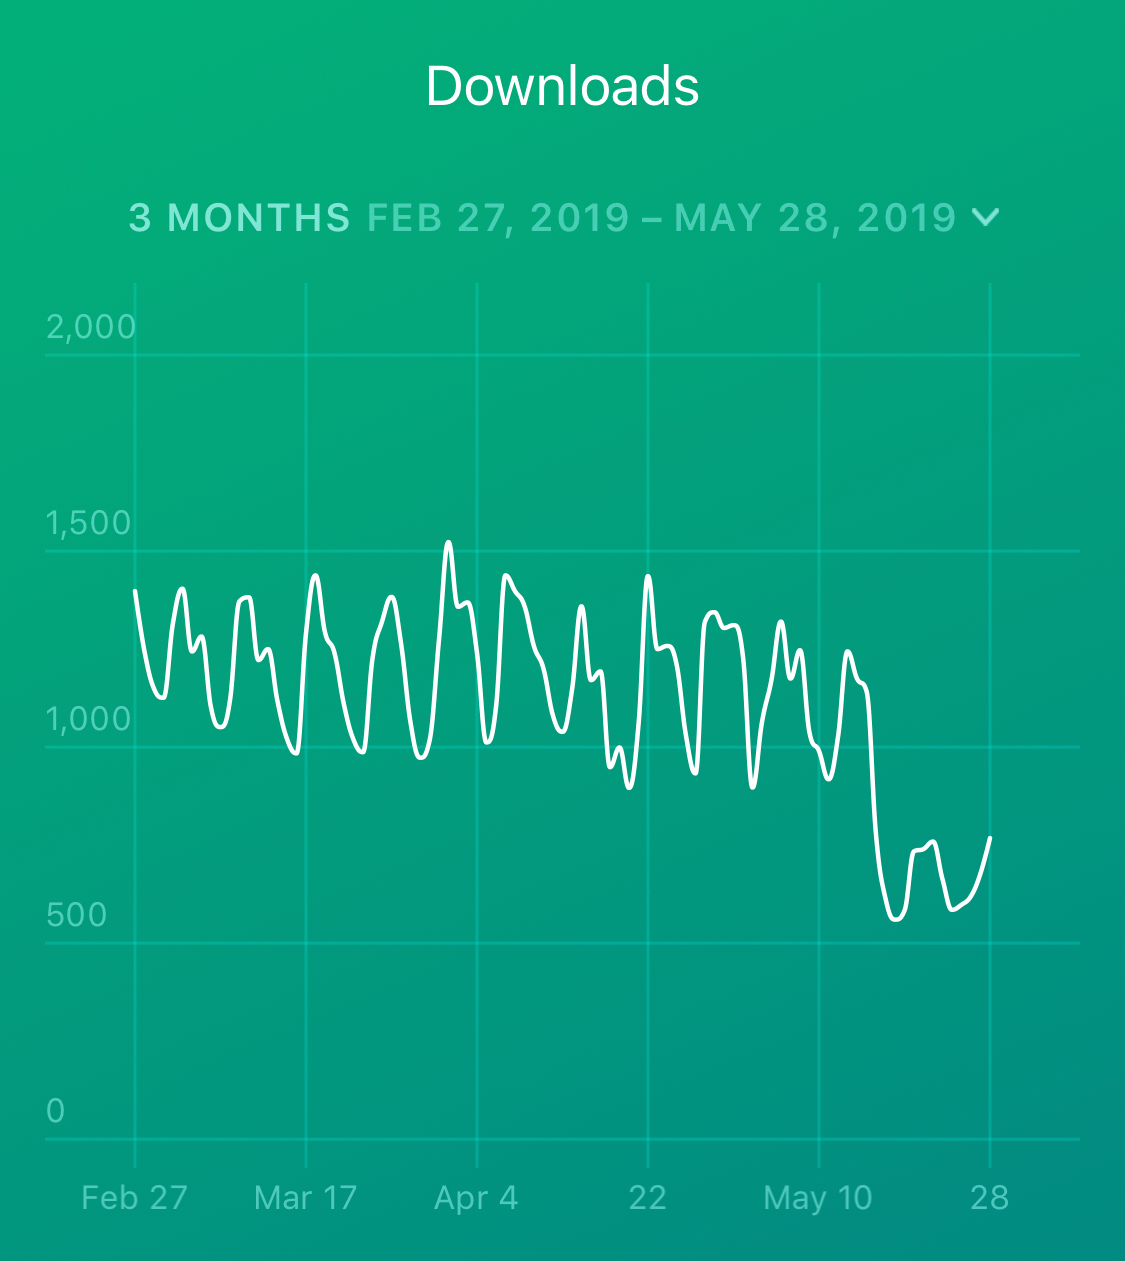 App downloads are still down, a week and a half later.